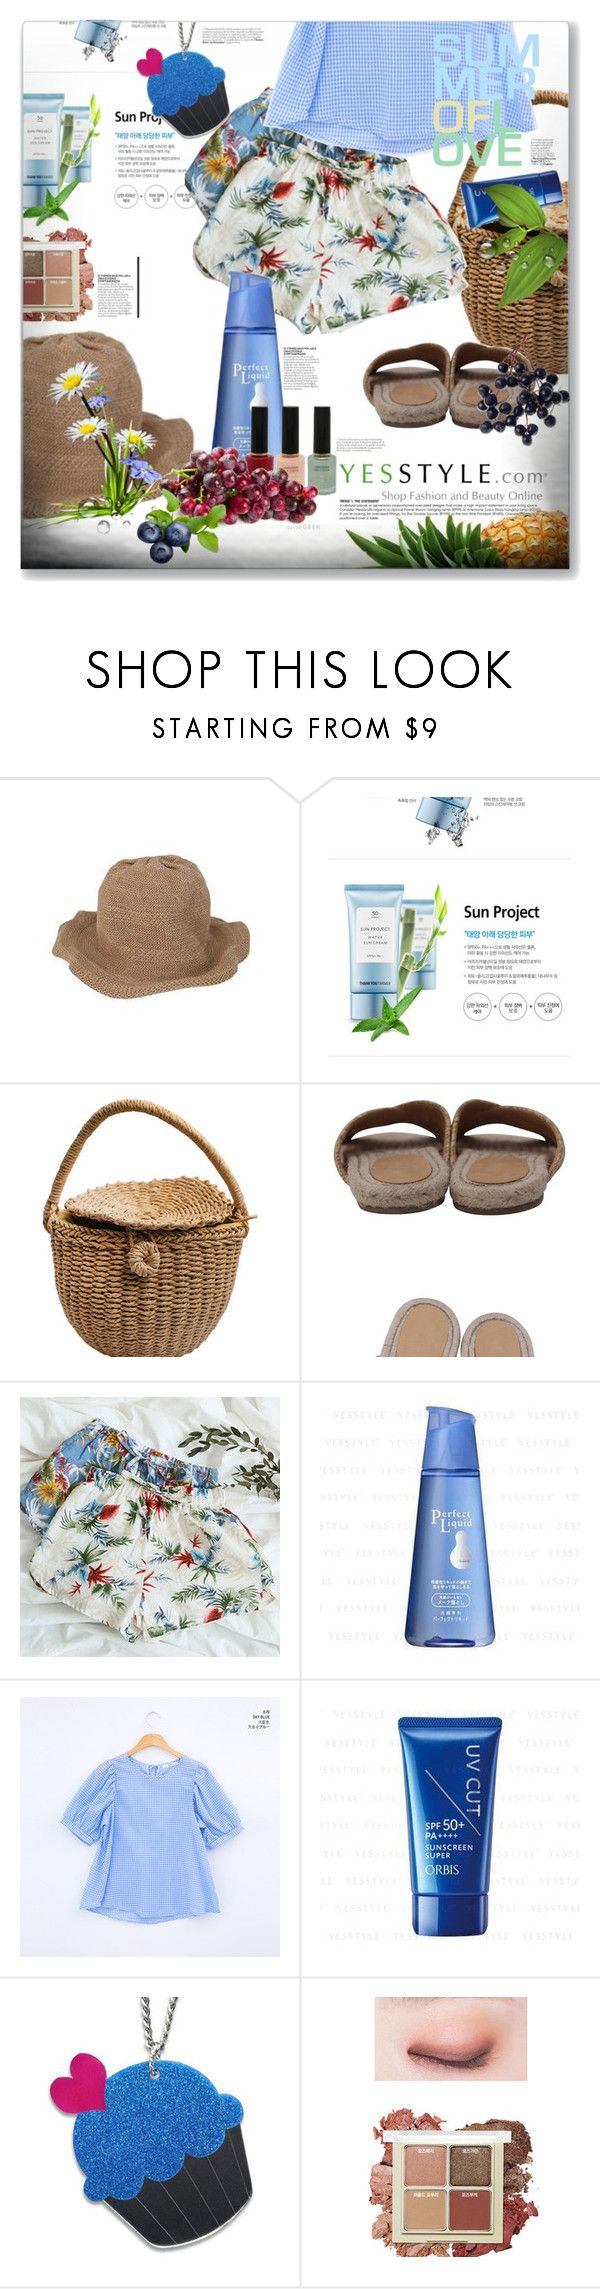 """""""Share your summer picnic outfit and WIN US$40 store coupons!"""" by anasko ❤ liked on Polyvore featuring DaBaGirl, Thank You Farmer, Goroke, Naning9, Shiseido, chuu, Sweet & Co. and Etude House"""